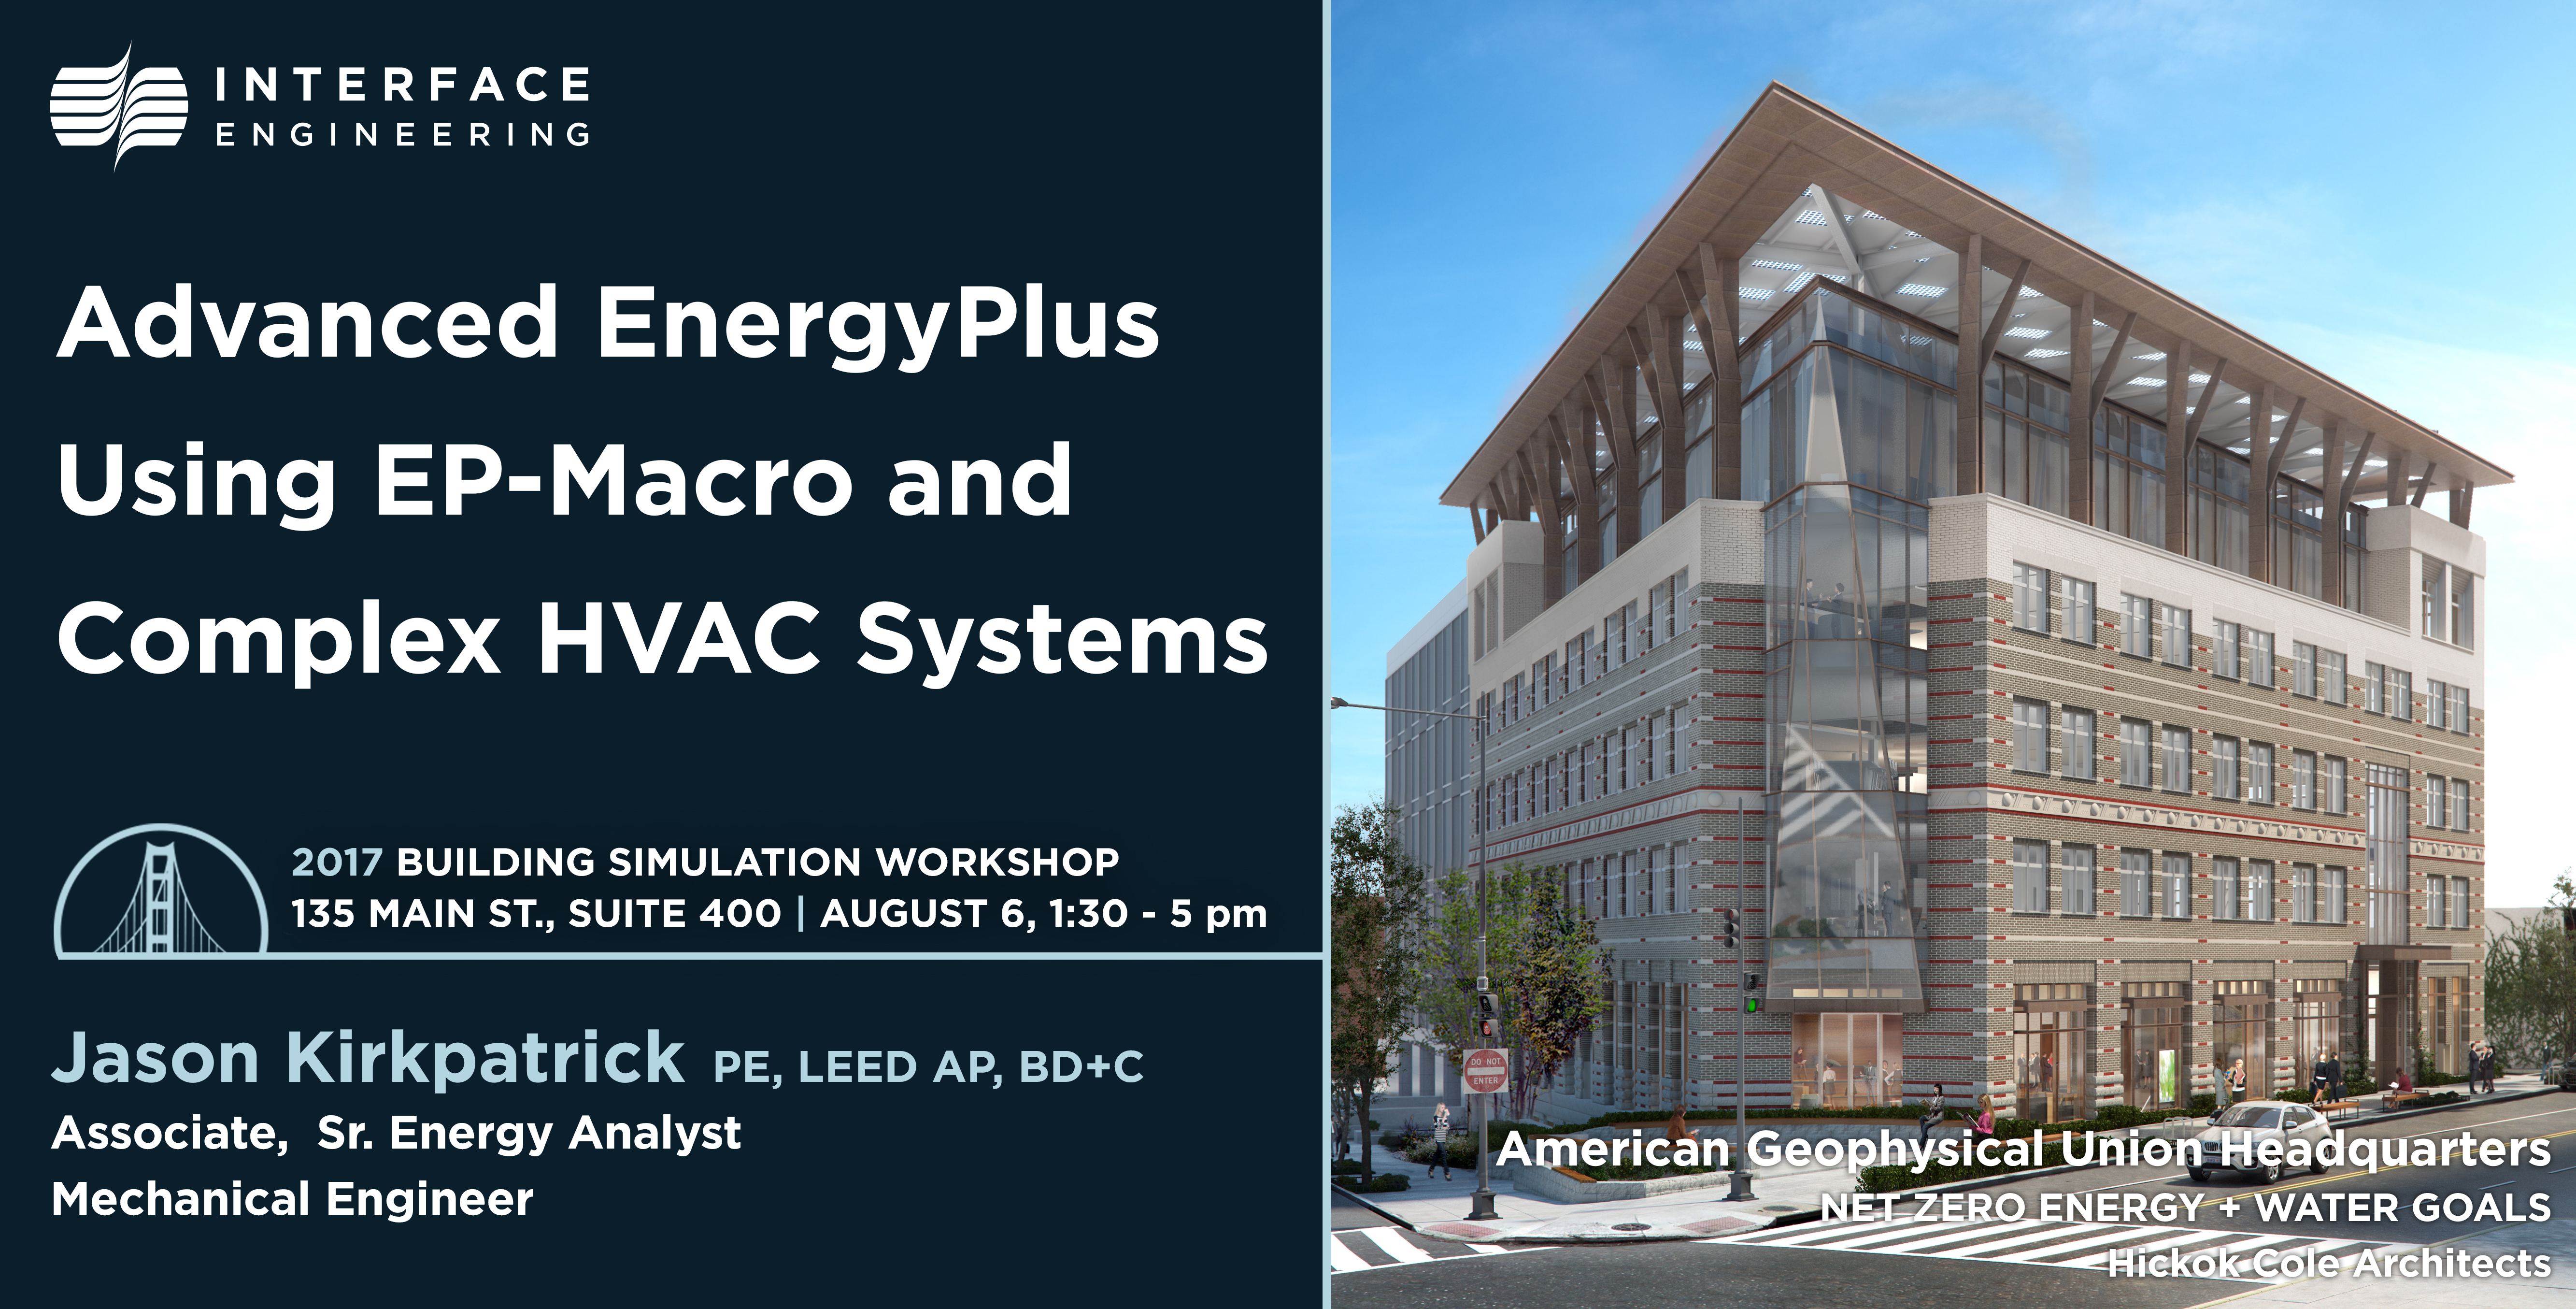 Simulation Facade Interface Workshop At Building Simulation 2017 Interface Engineering